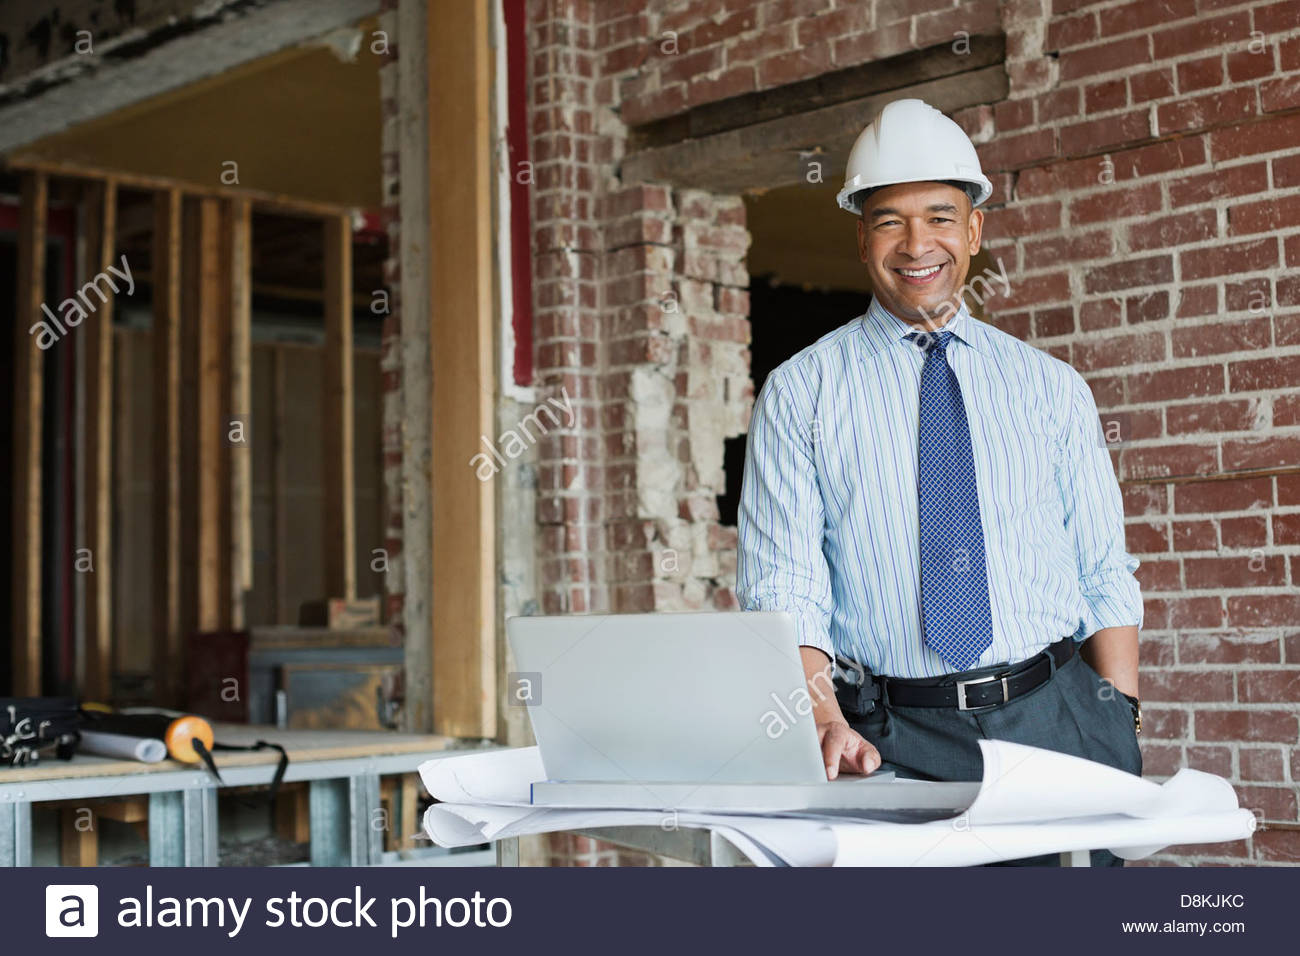 Portrait of male architect with laptop at construction site - Stock Image